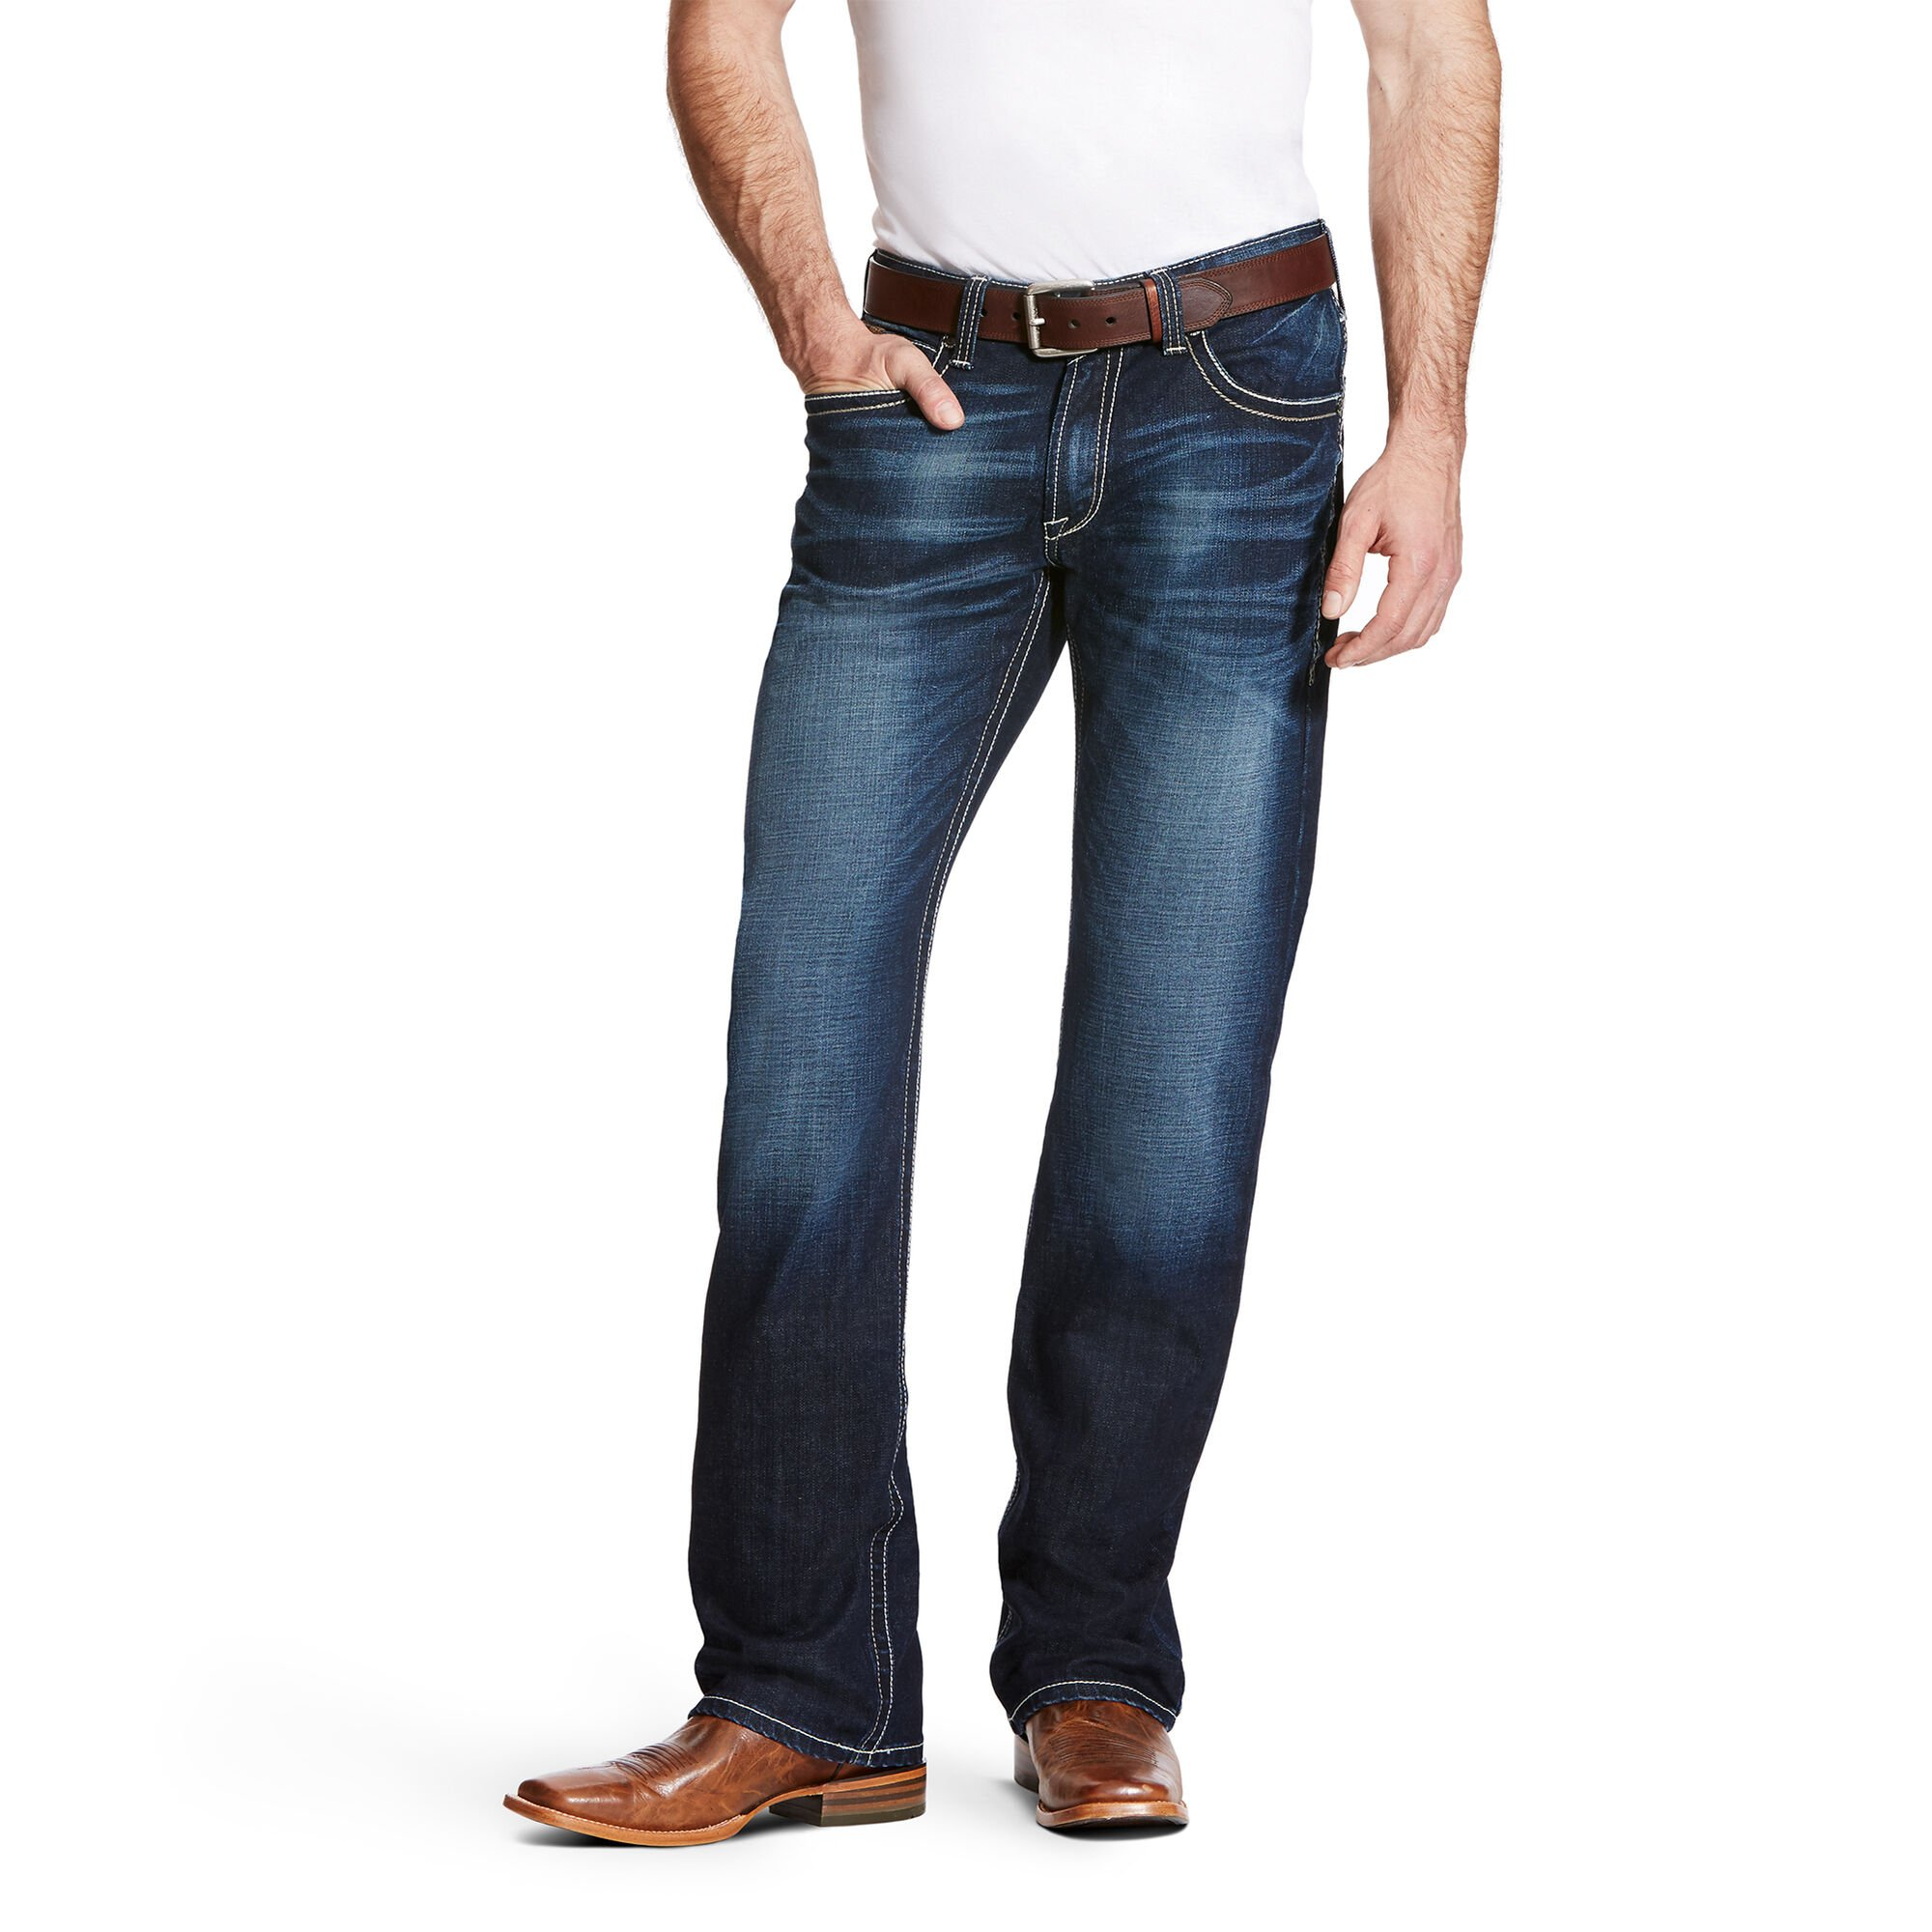 M4 Low Rise Stretch Adkins Boot Cut Jean